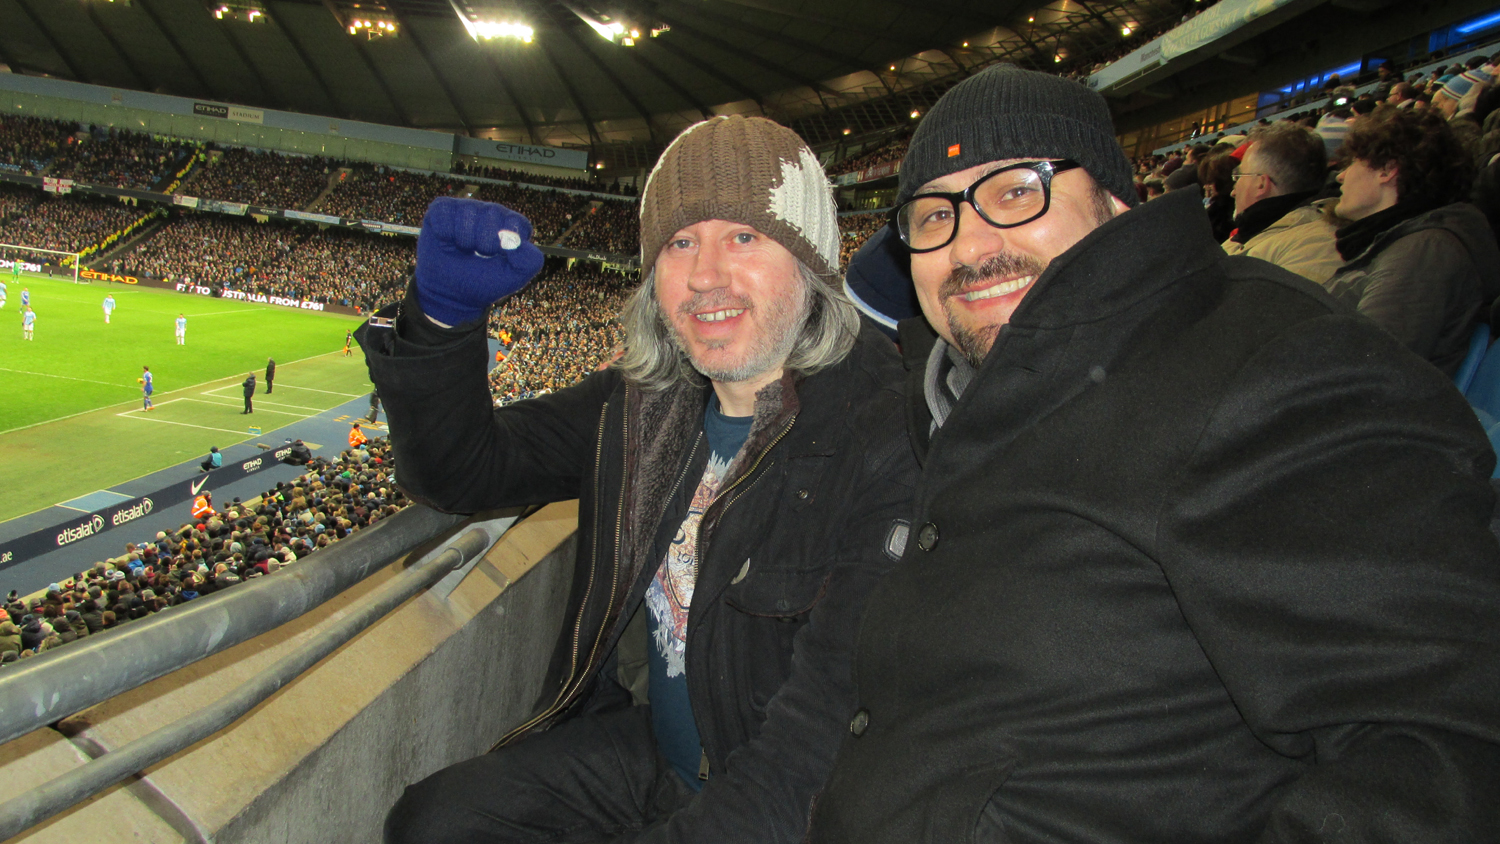 Badly Drawn Boy & Dave Sherwood at the Etihad